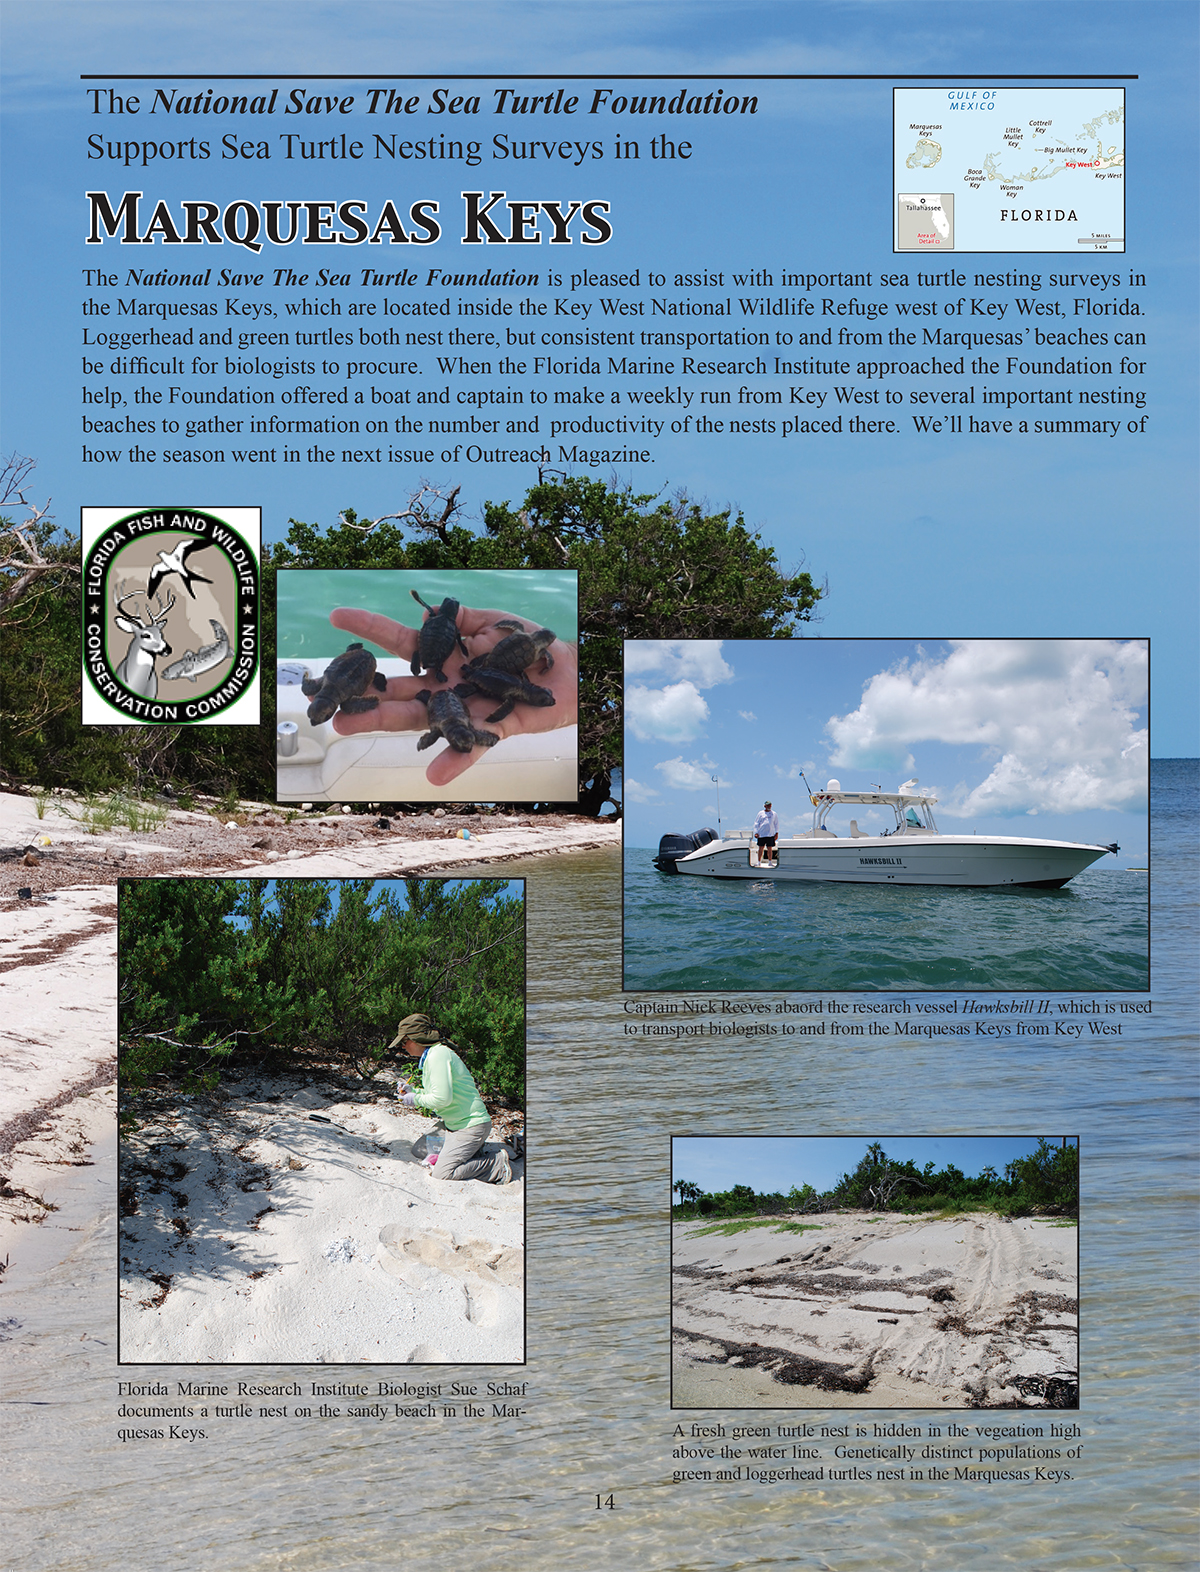 supports sea turtle nesting surveys in the marquesas keys